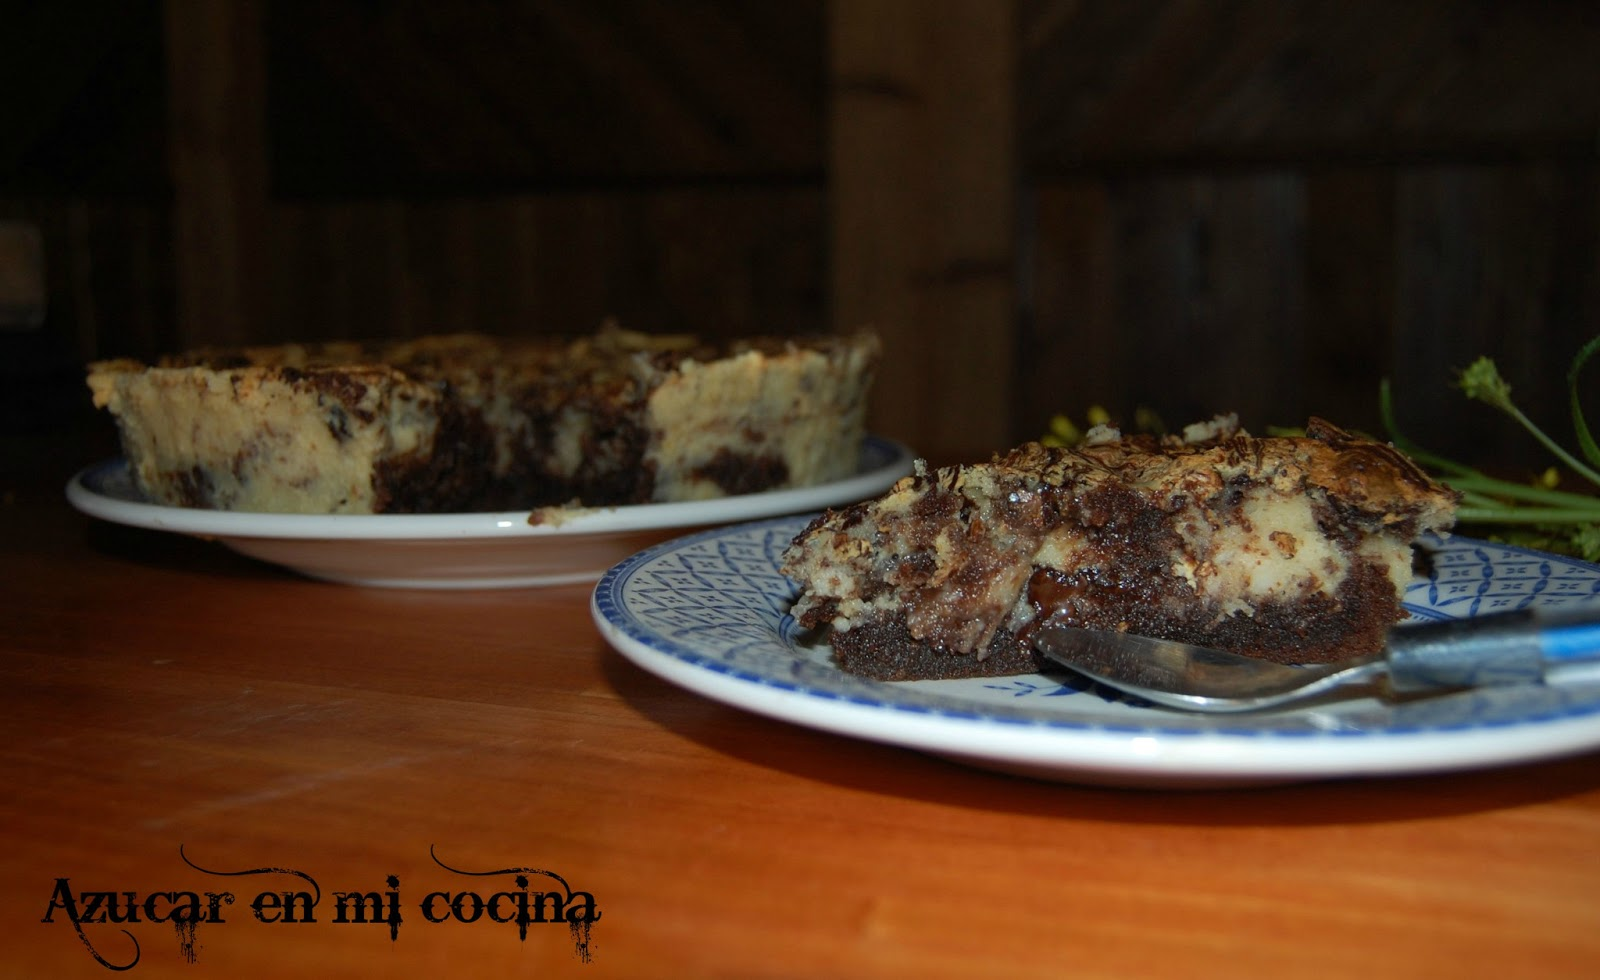 http://azucarenmicocina.blogspot.com.es/2013/04/brownie-swirl-cheesecake.html